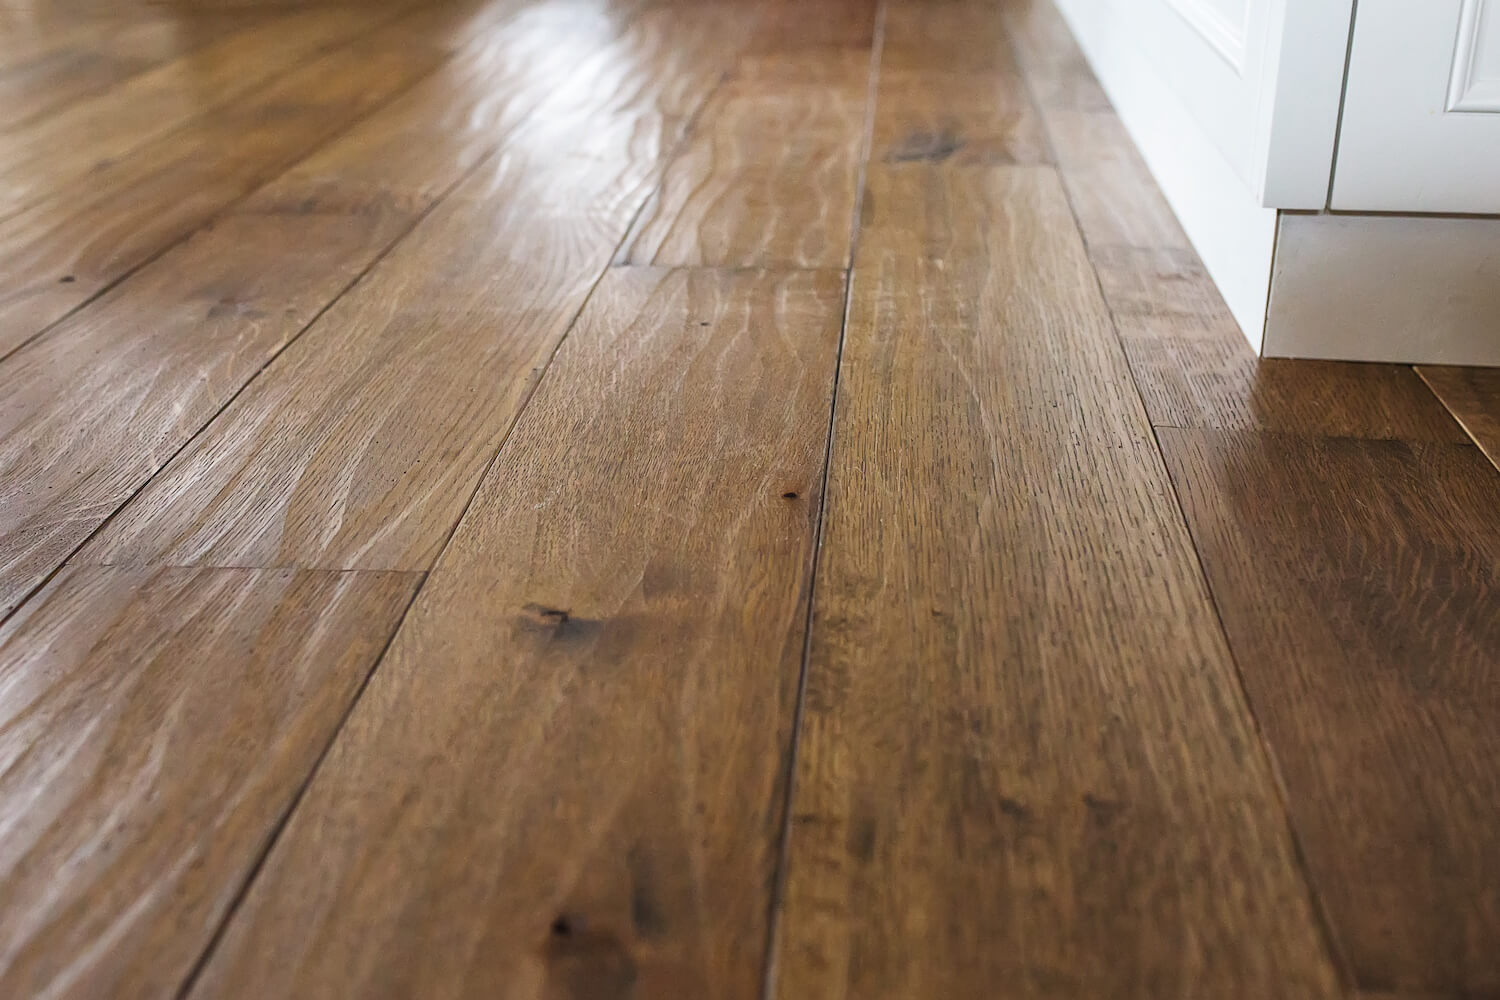 Detail shot of hand scraped white oak floor finished with hardwax oil.